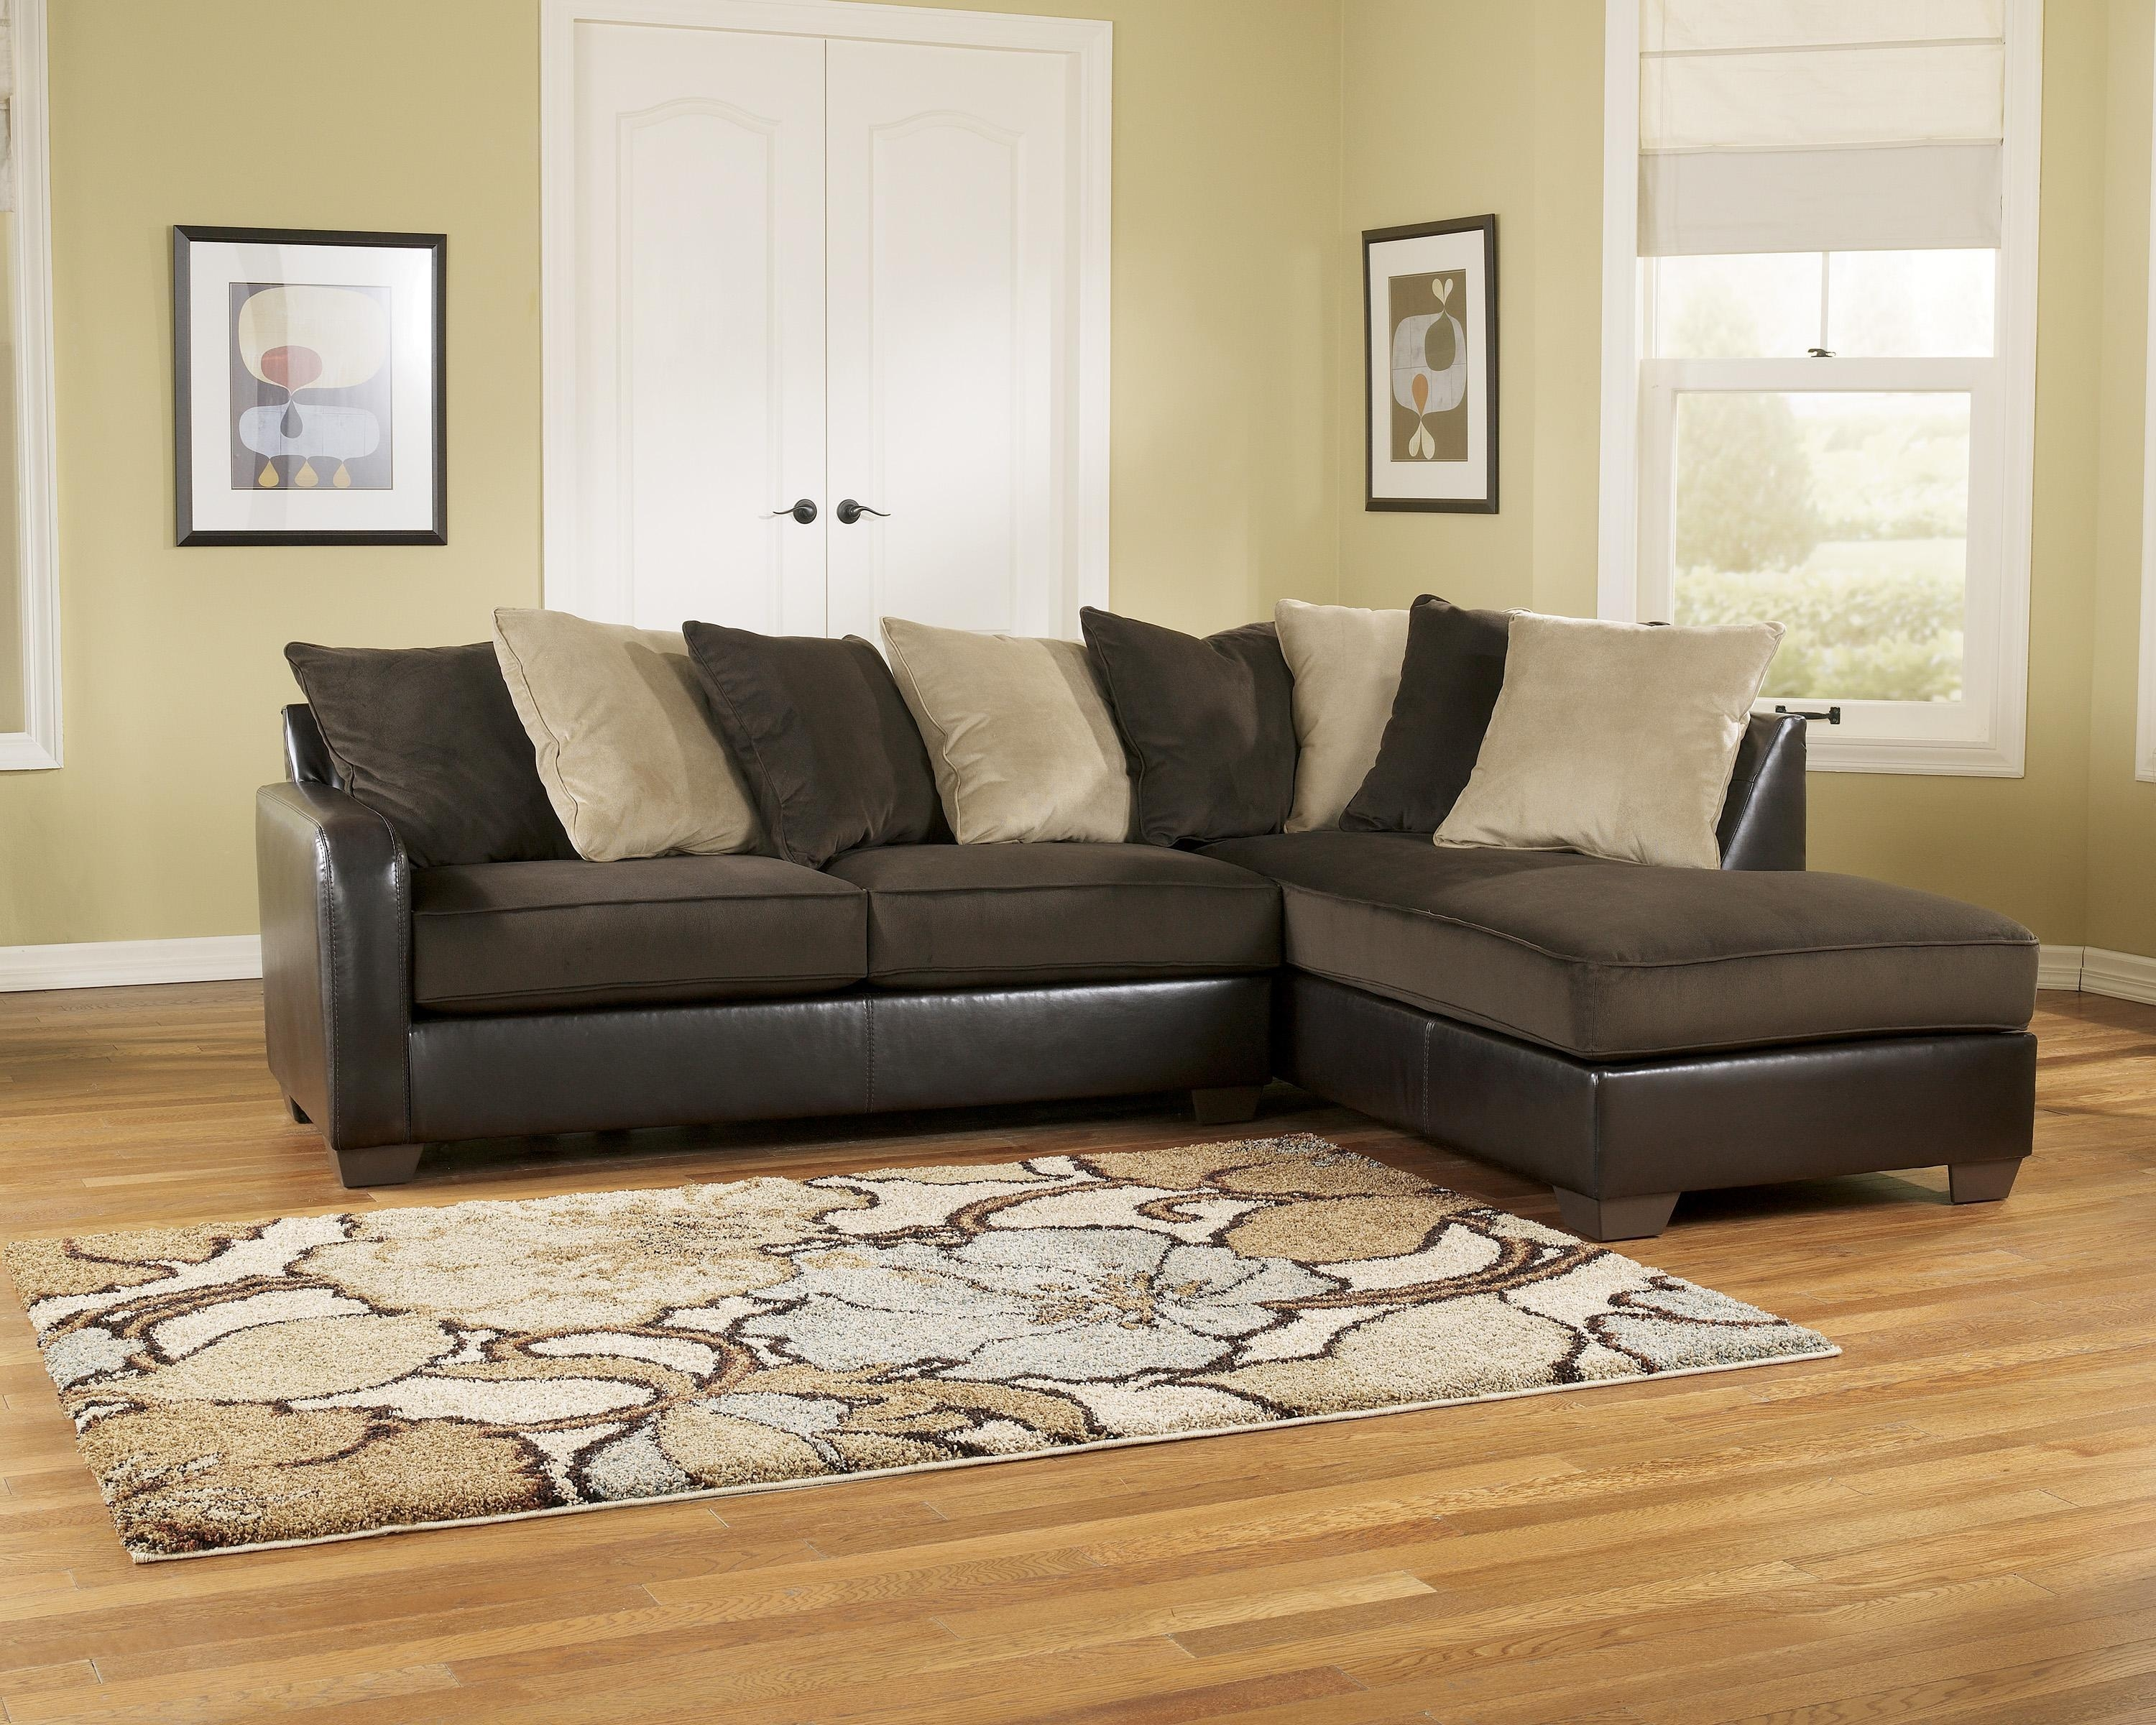 Corduroy Sectional Sofa Venetian Worldwide Taylor 2 Piece